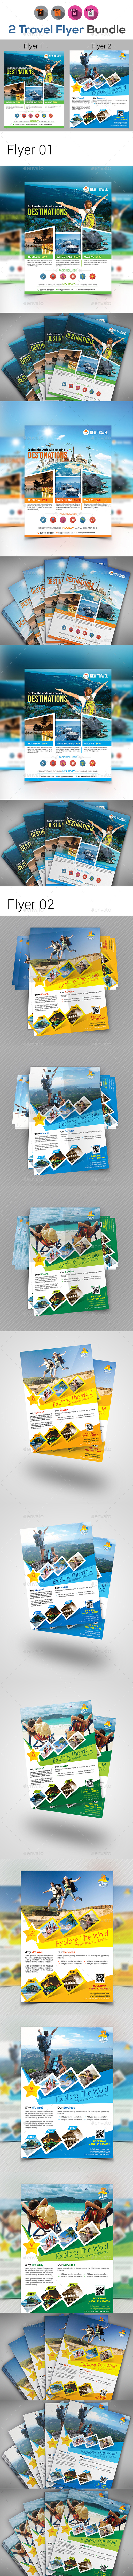 Travel Flyer Bundle Templates - Corporate Flyers